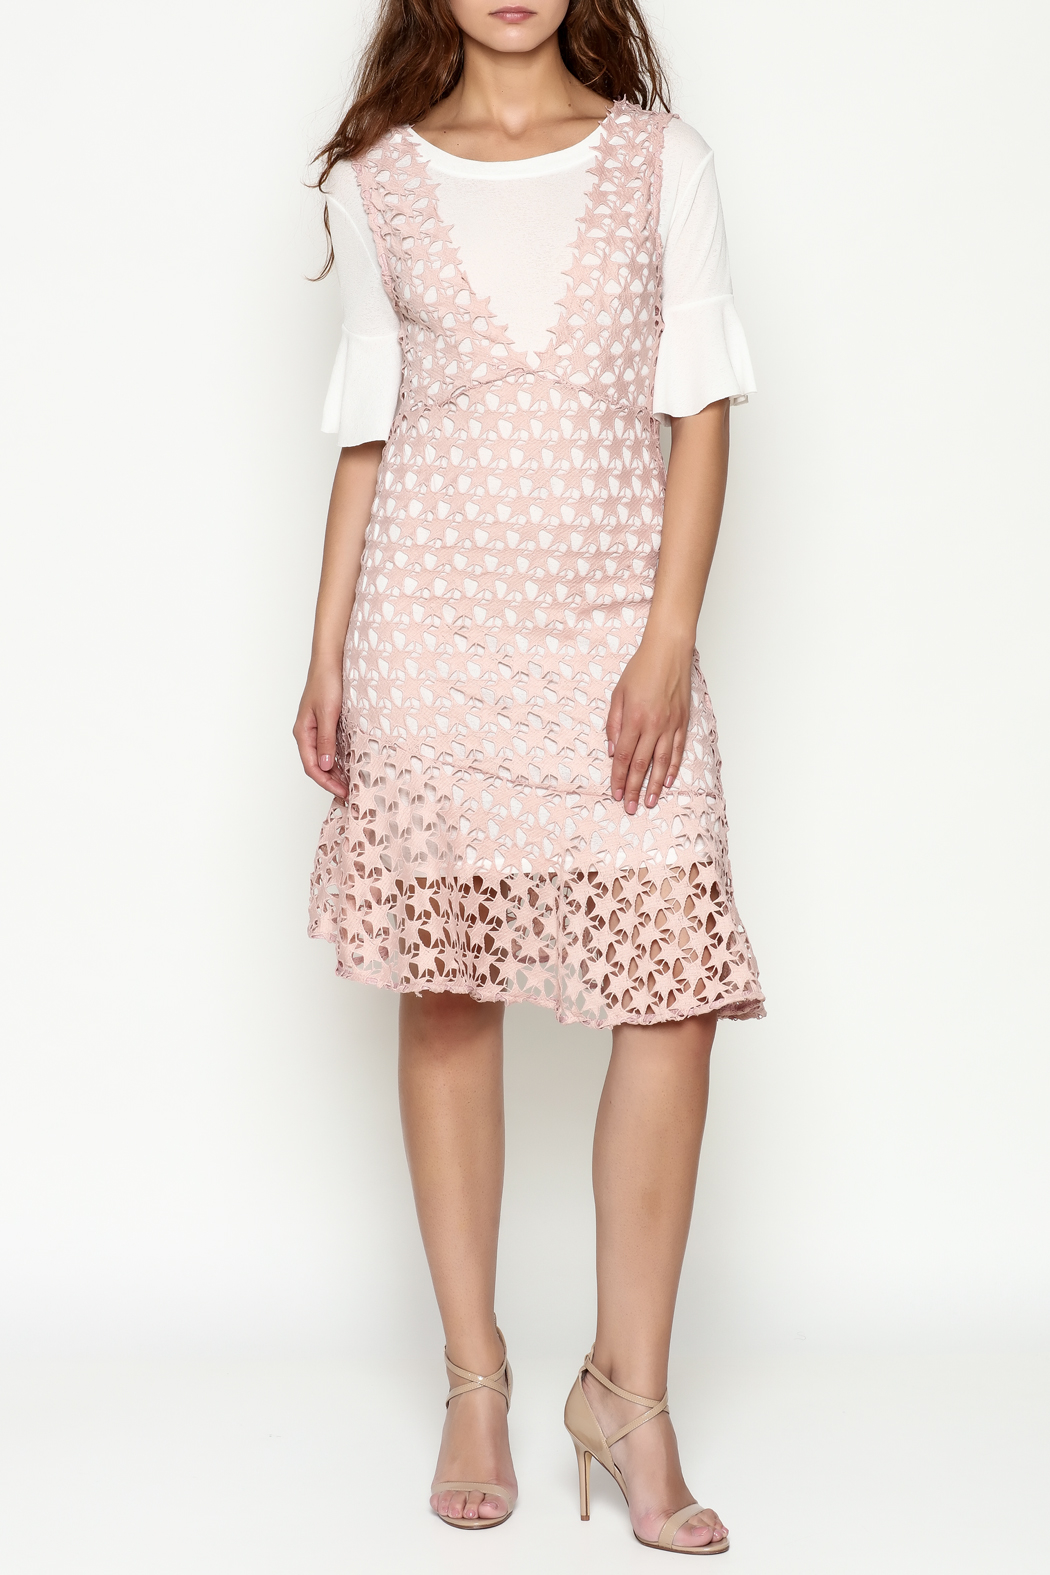 THINK CLOSET Star Lace Dress - Side Cropped Image